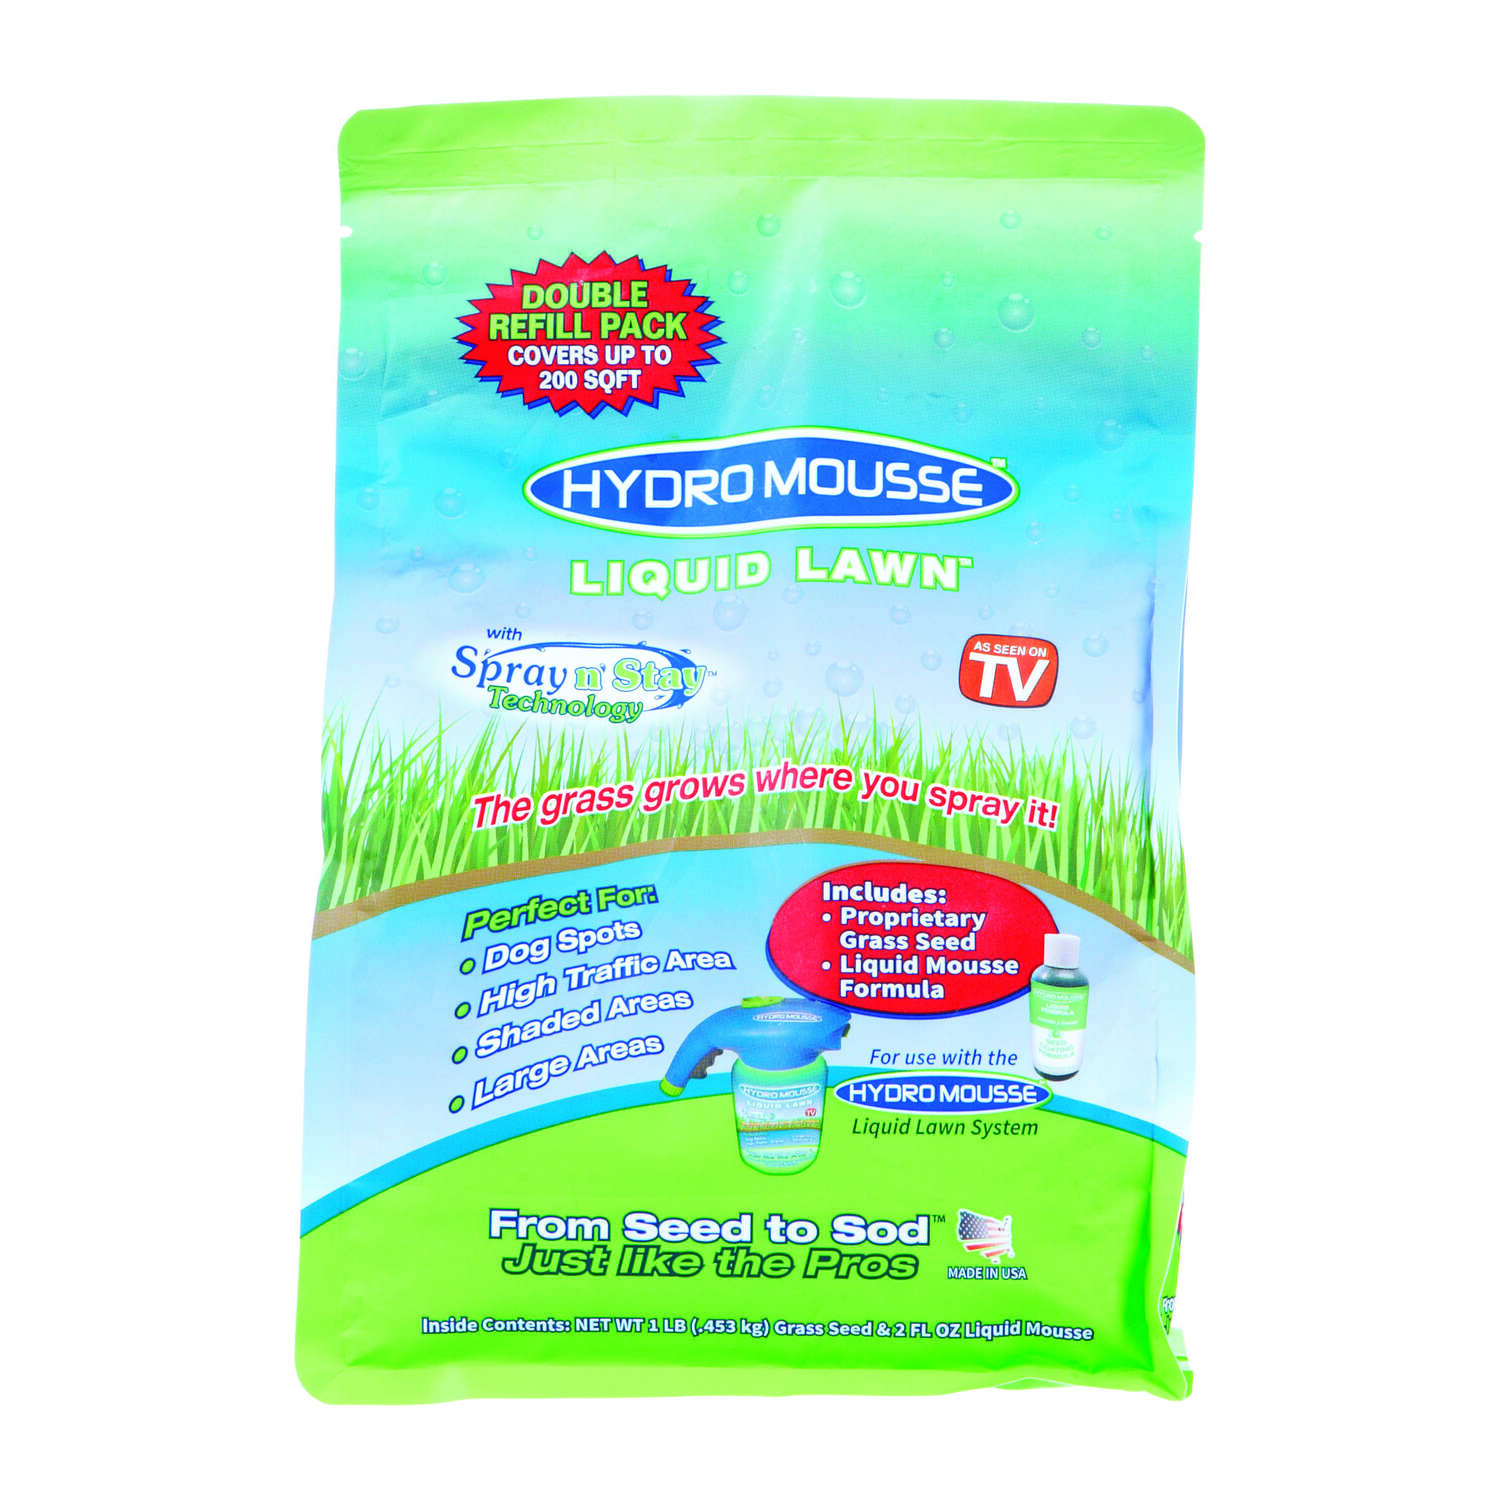 Hydro Mousse Liquid Lawn  As Seen on TV  Fescue Blend  Full Sun  Grass Seed  1 lb.